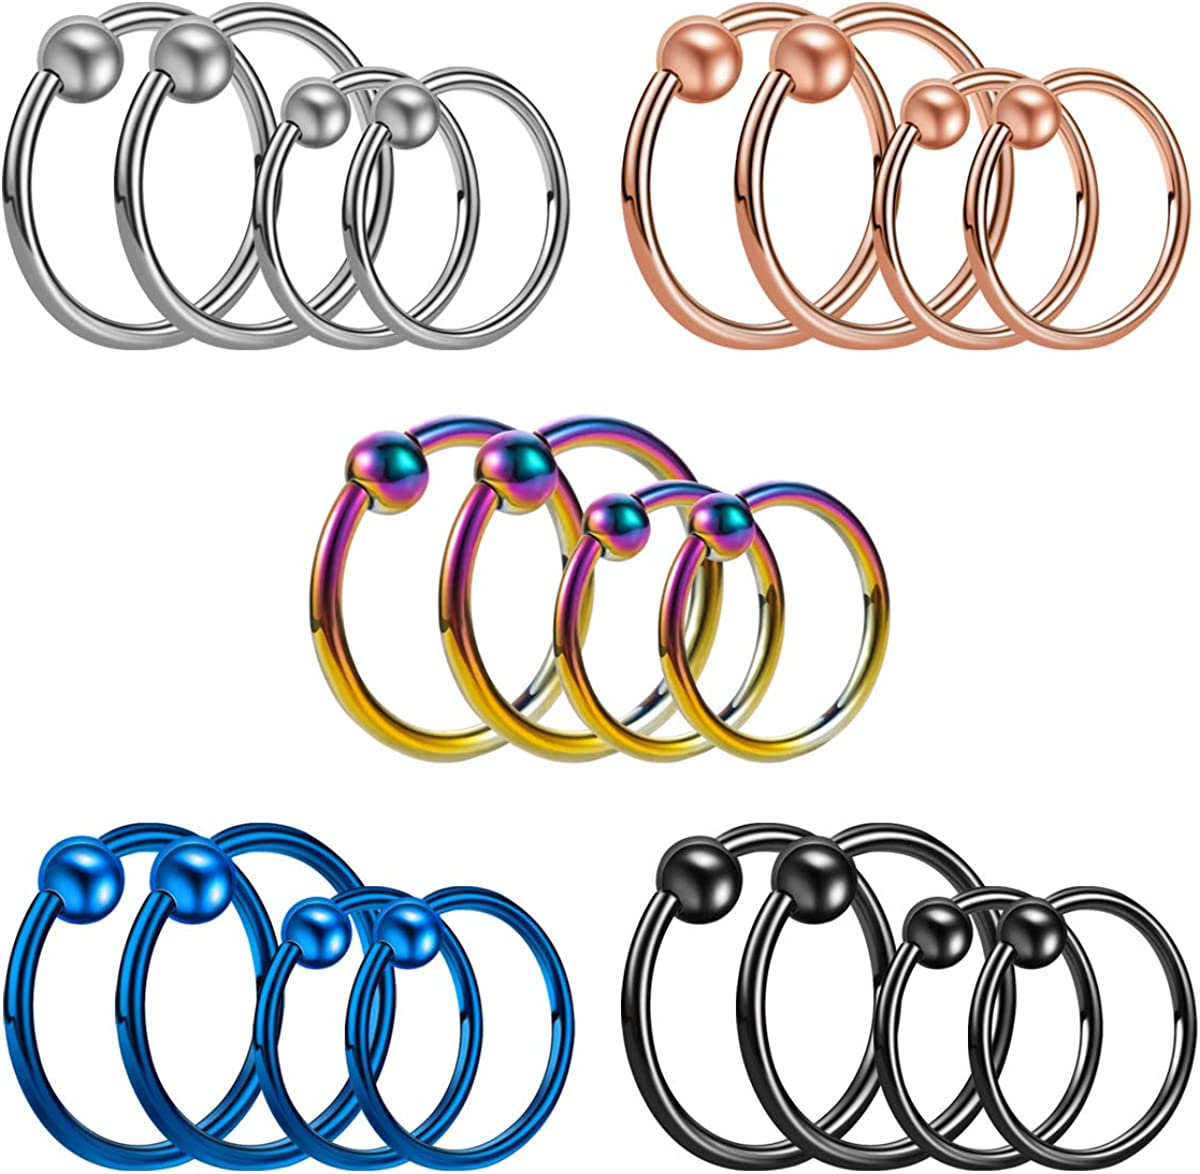 SEENI 20PCS 18G 16G Stainless Steel Nose Rings Hoop Cartilage Helix Ear Piercing Tragus Set Body Jewelry For Women